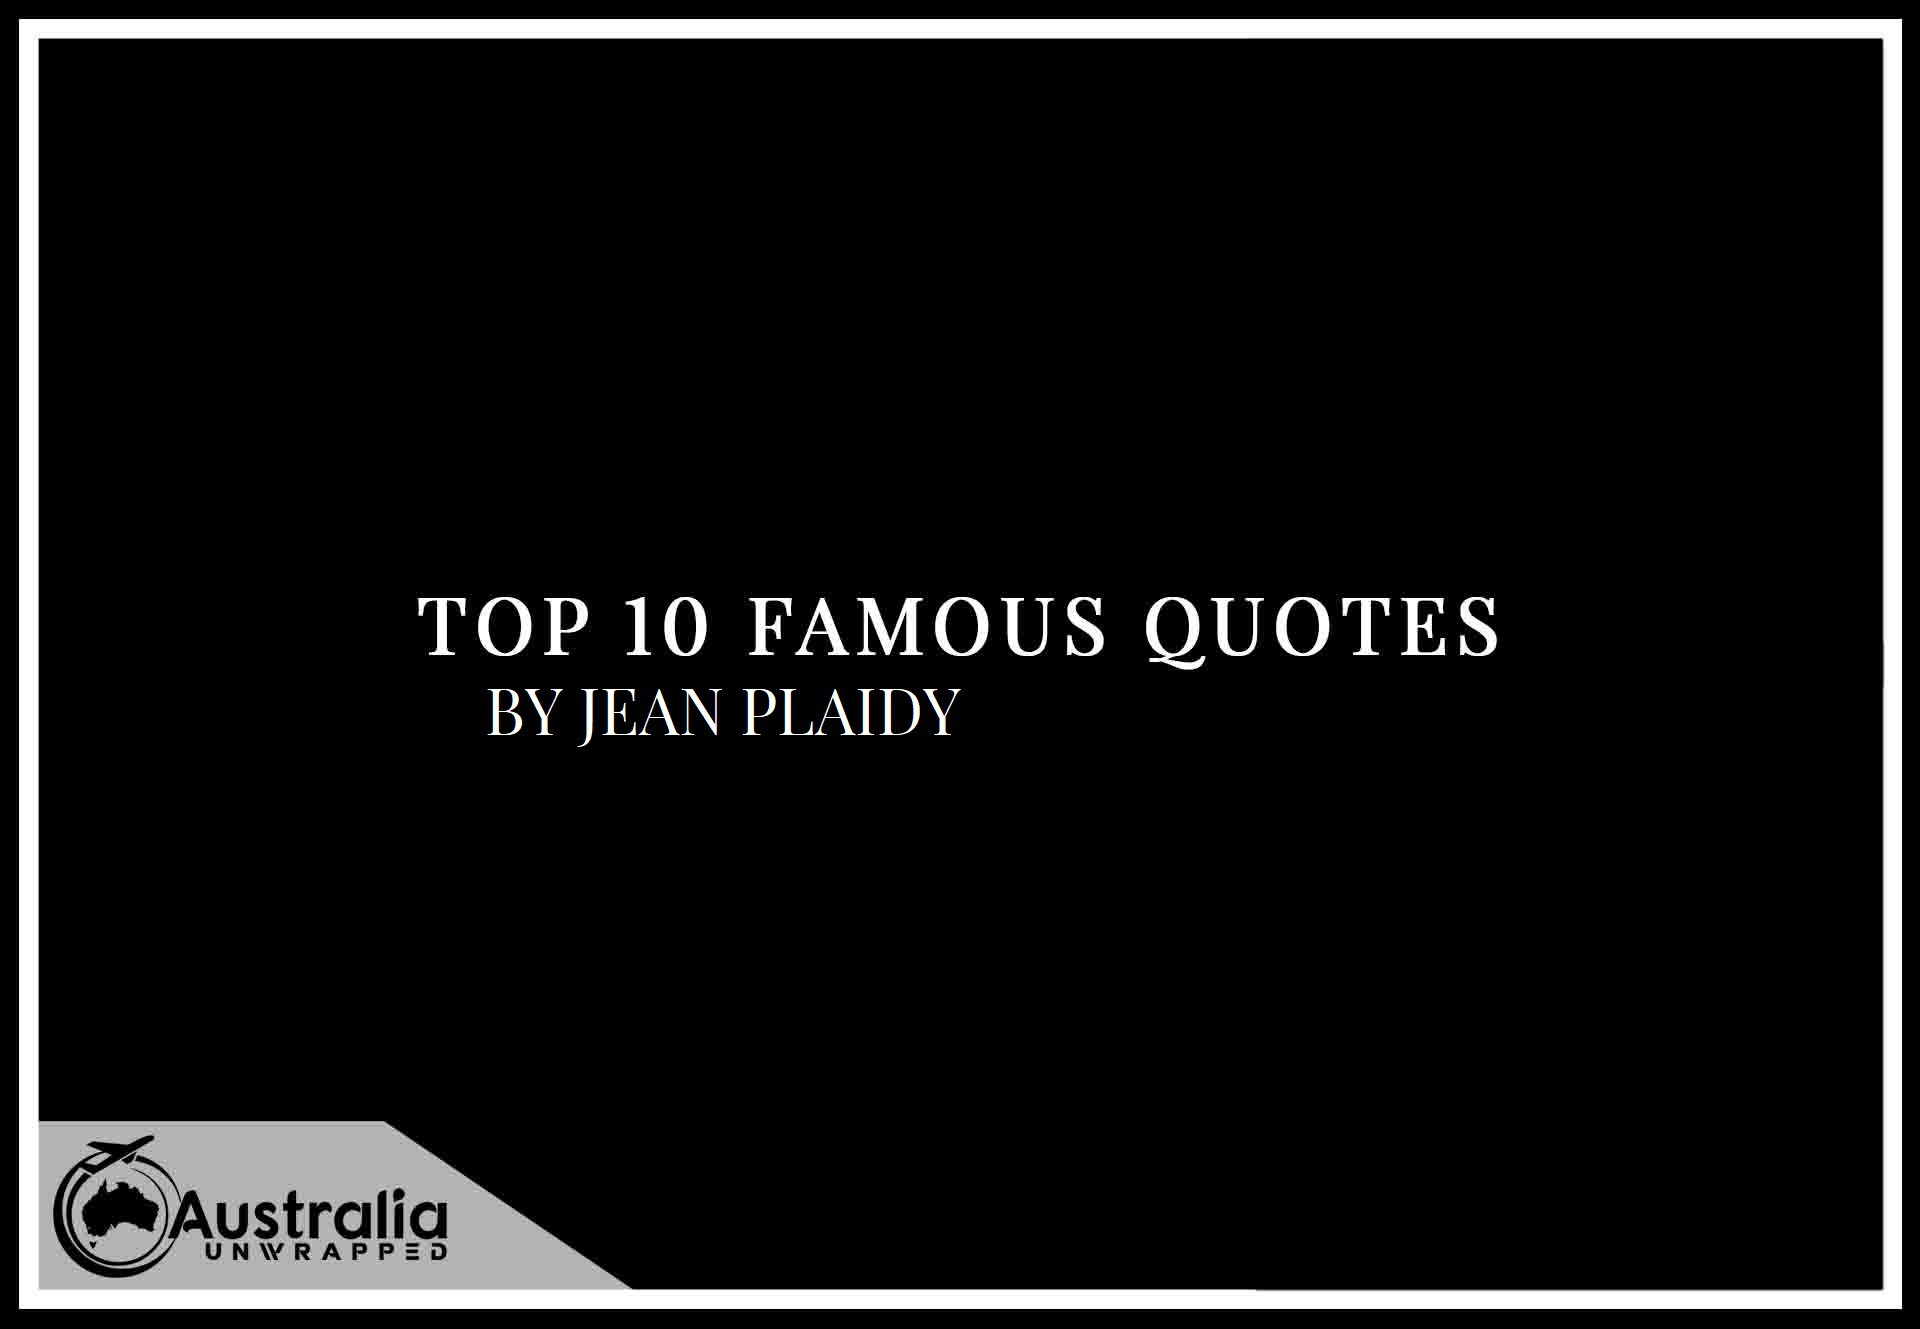 Top 10 Famous Quotes by Author Jean Plaidy